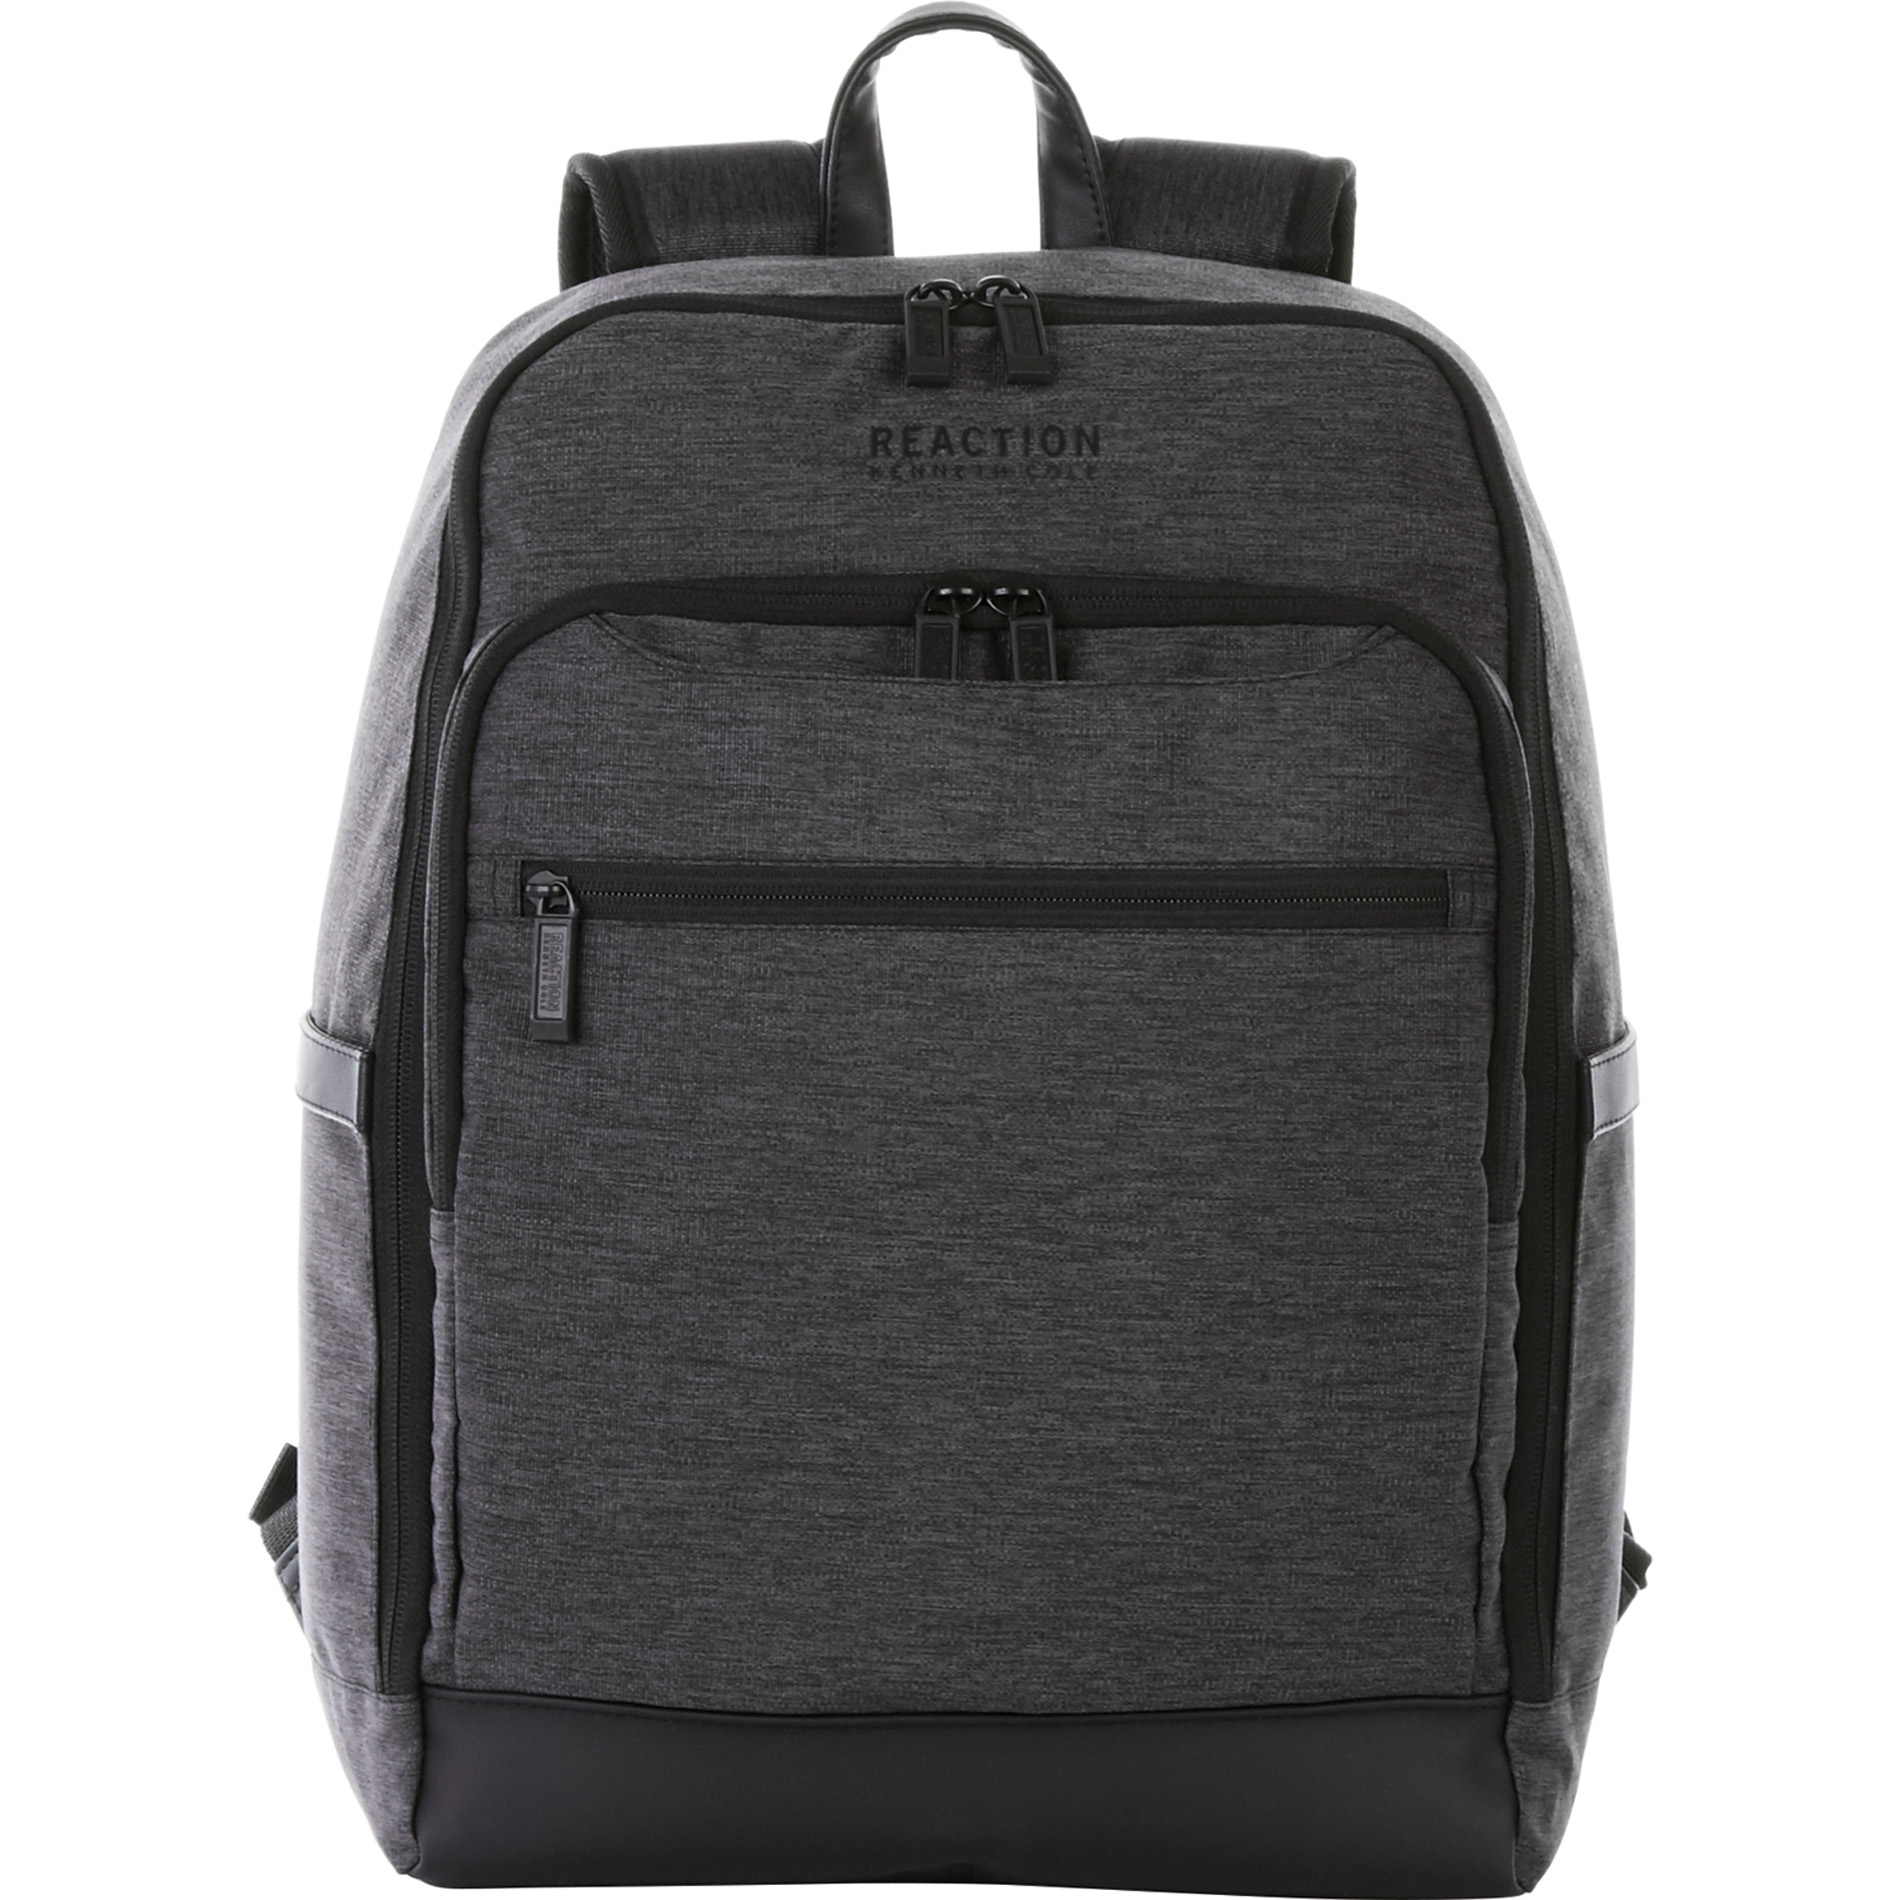 Kenneth Cole 9950-89 - Executive 15 Computer Backpack